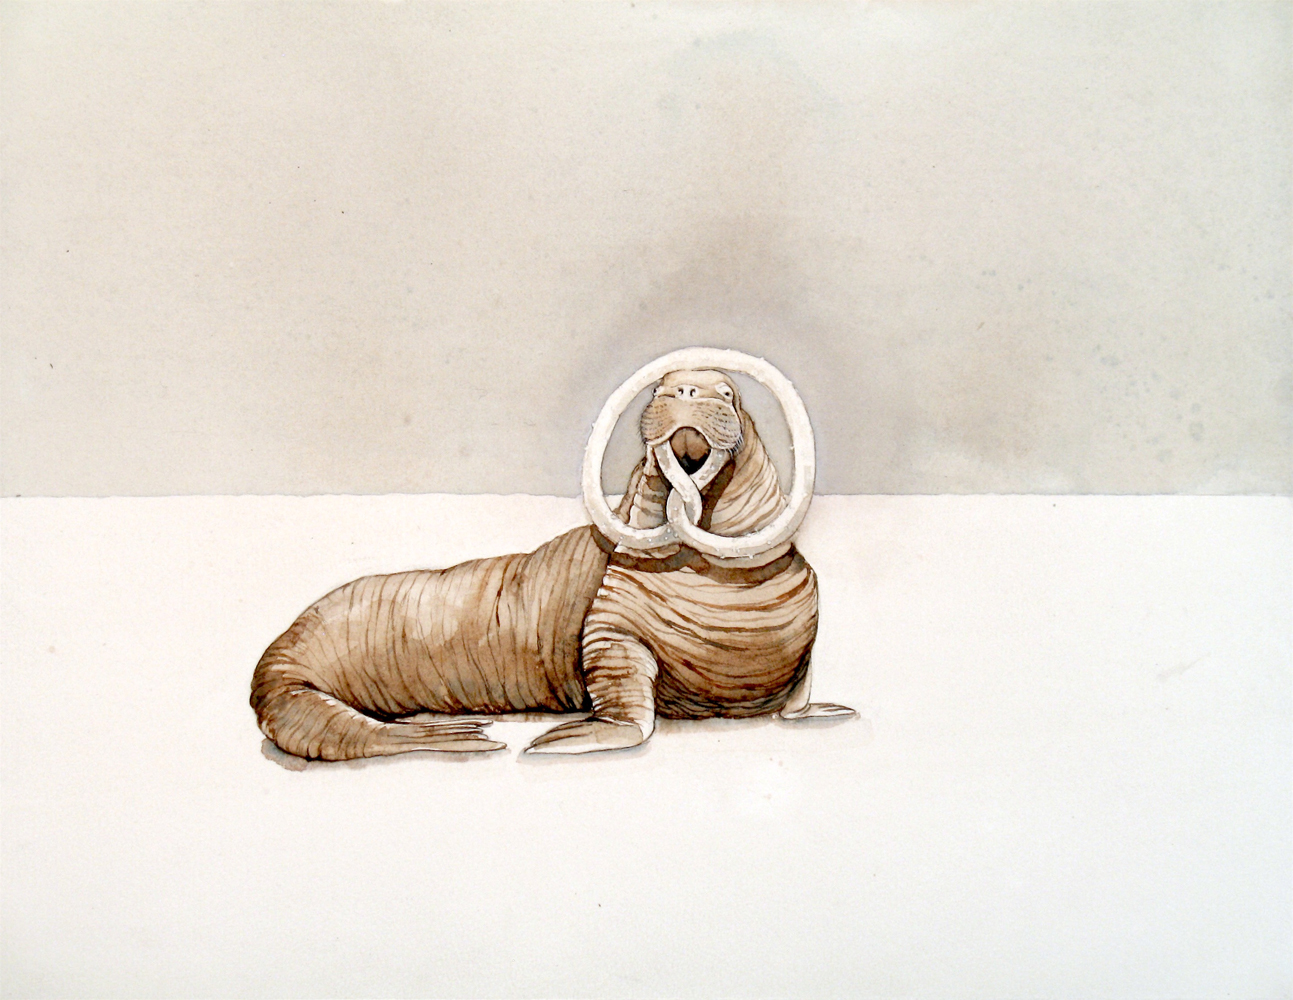 Justin Gibbens, Bavarian Walrus i, 2017, watercolor, ink on paper, 10 x 13 inches, SOLD